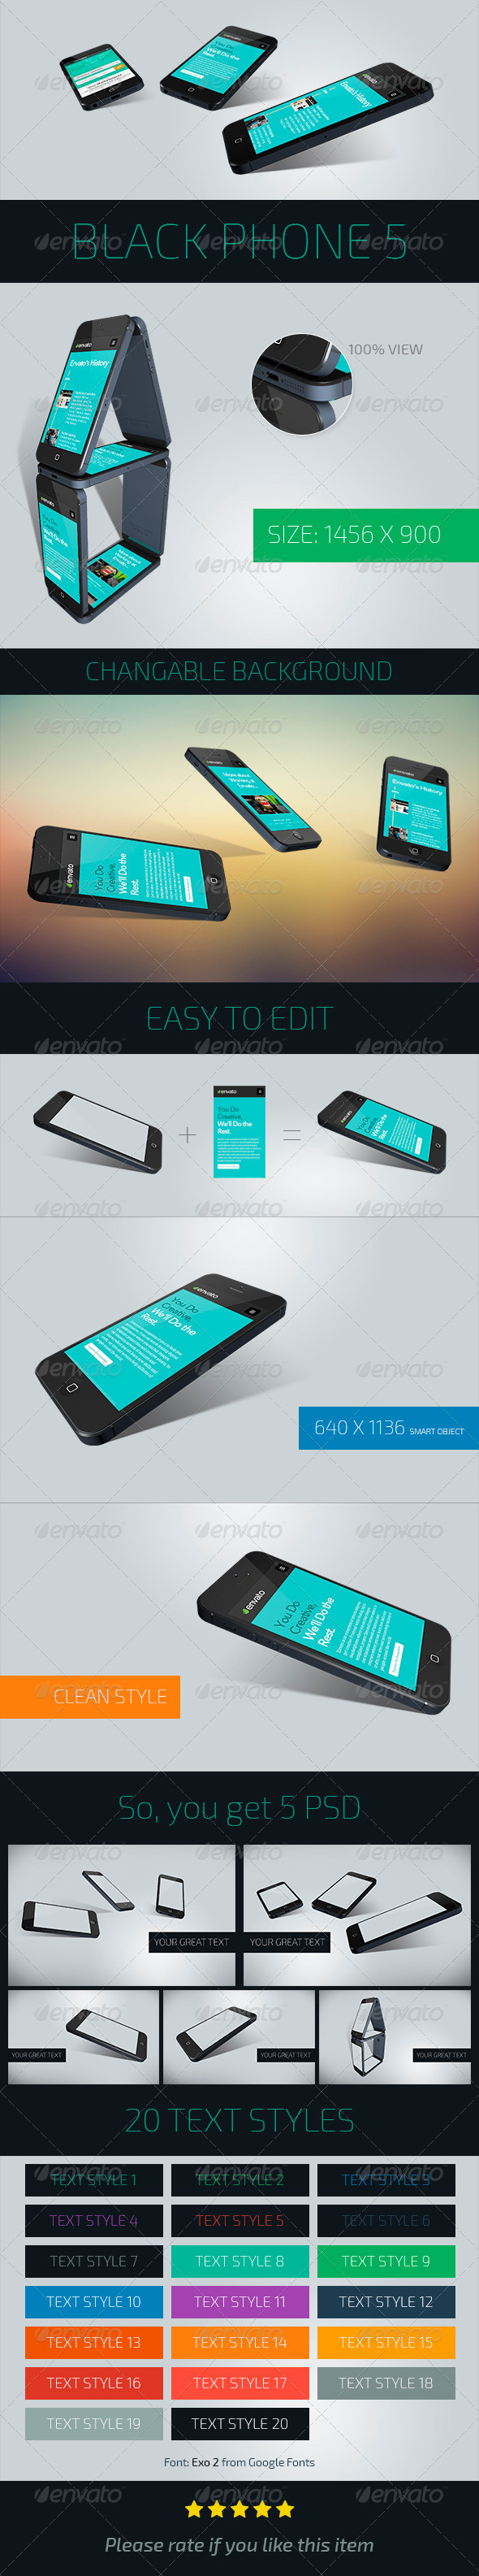 GraphicRiver Black Phone 5 Perspective View Mockup 5 PSD 7521774